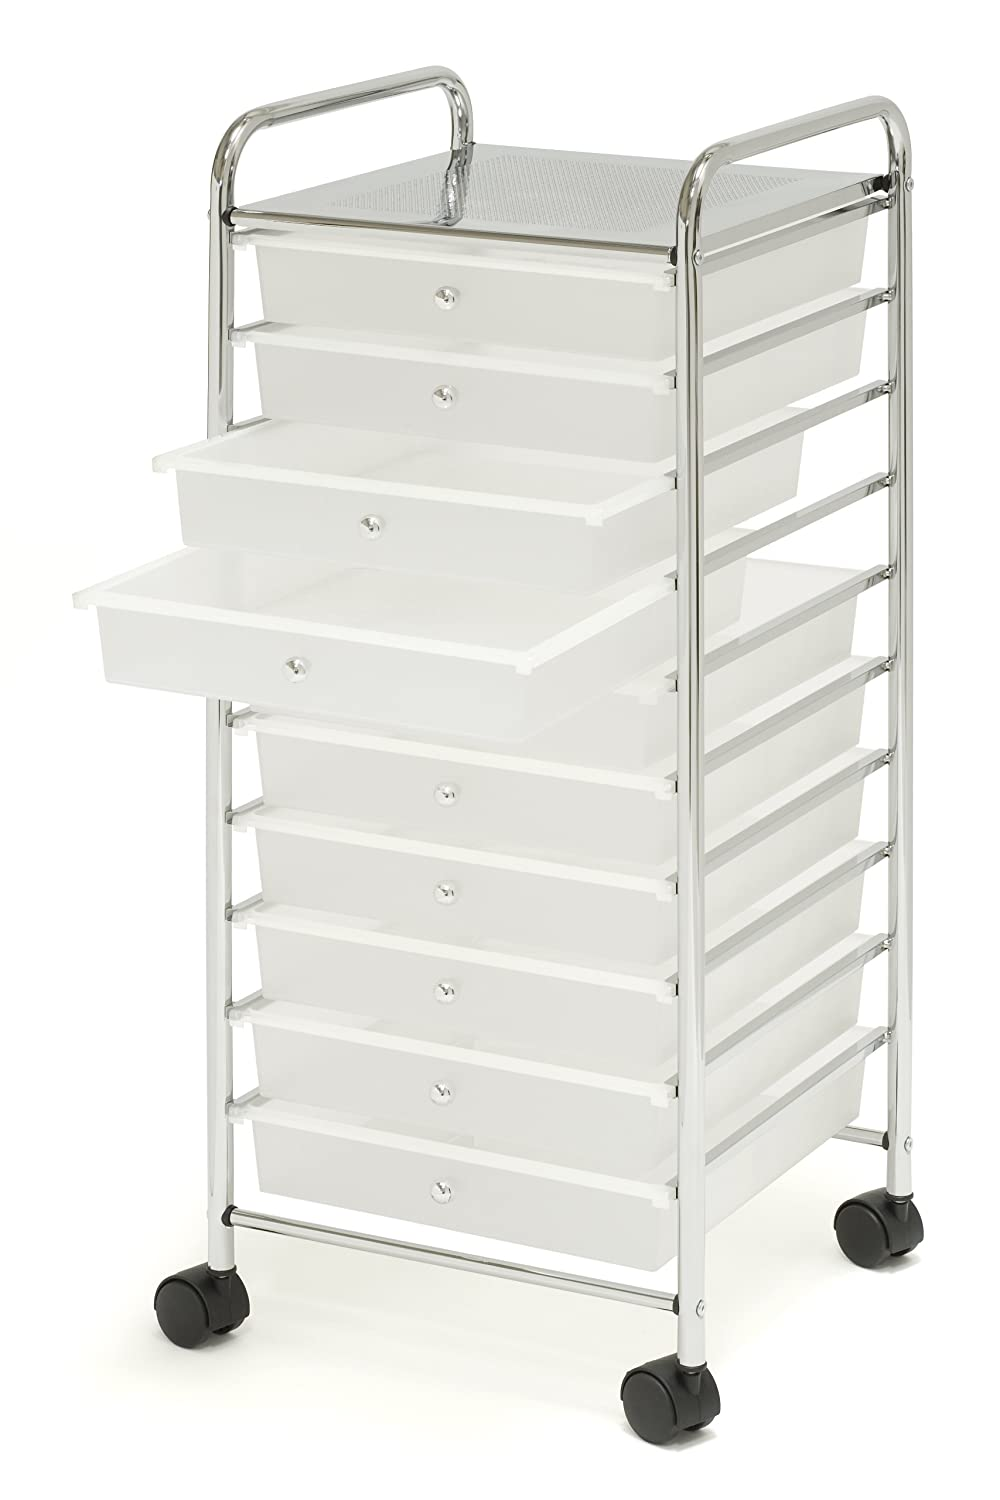 Scrapbook paper cart - Amazon Com Seville Classics 15 5 Inch By 15 4 Inch By 38 2 Inch 10 Drawer Organizer Cart Home Kitchen